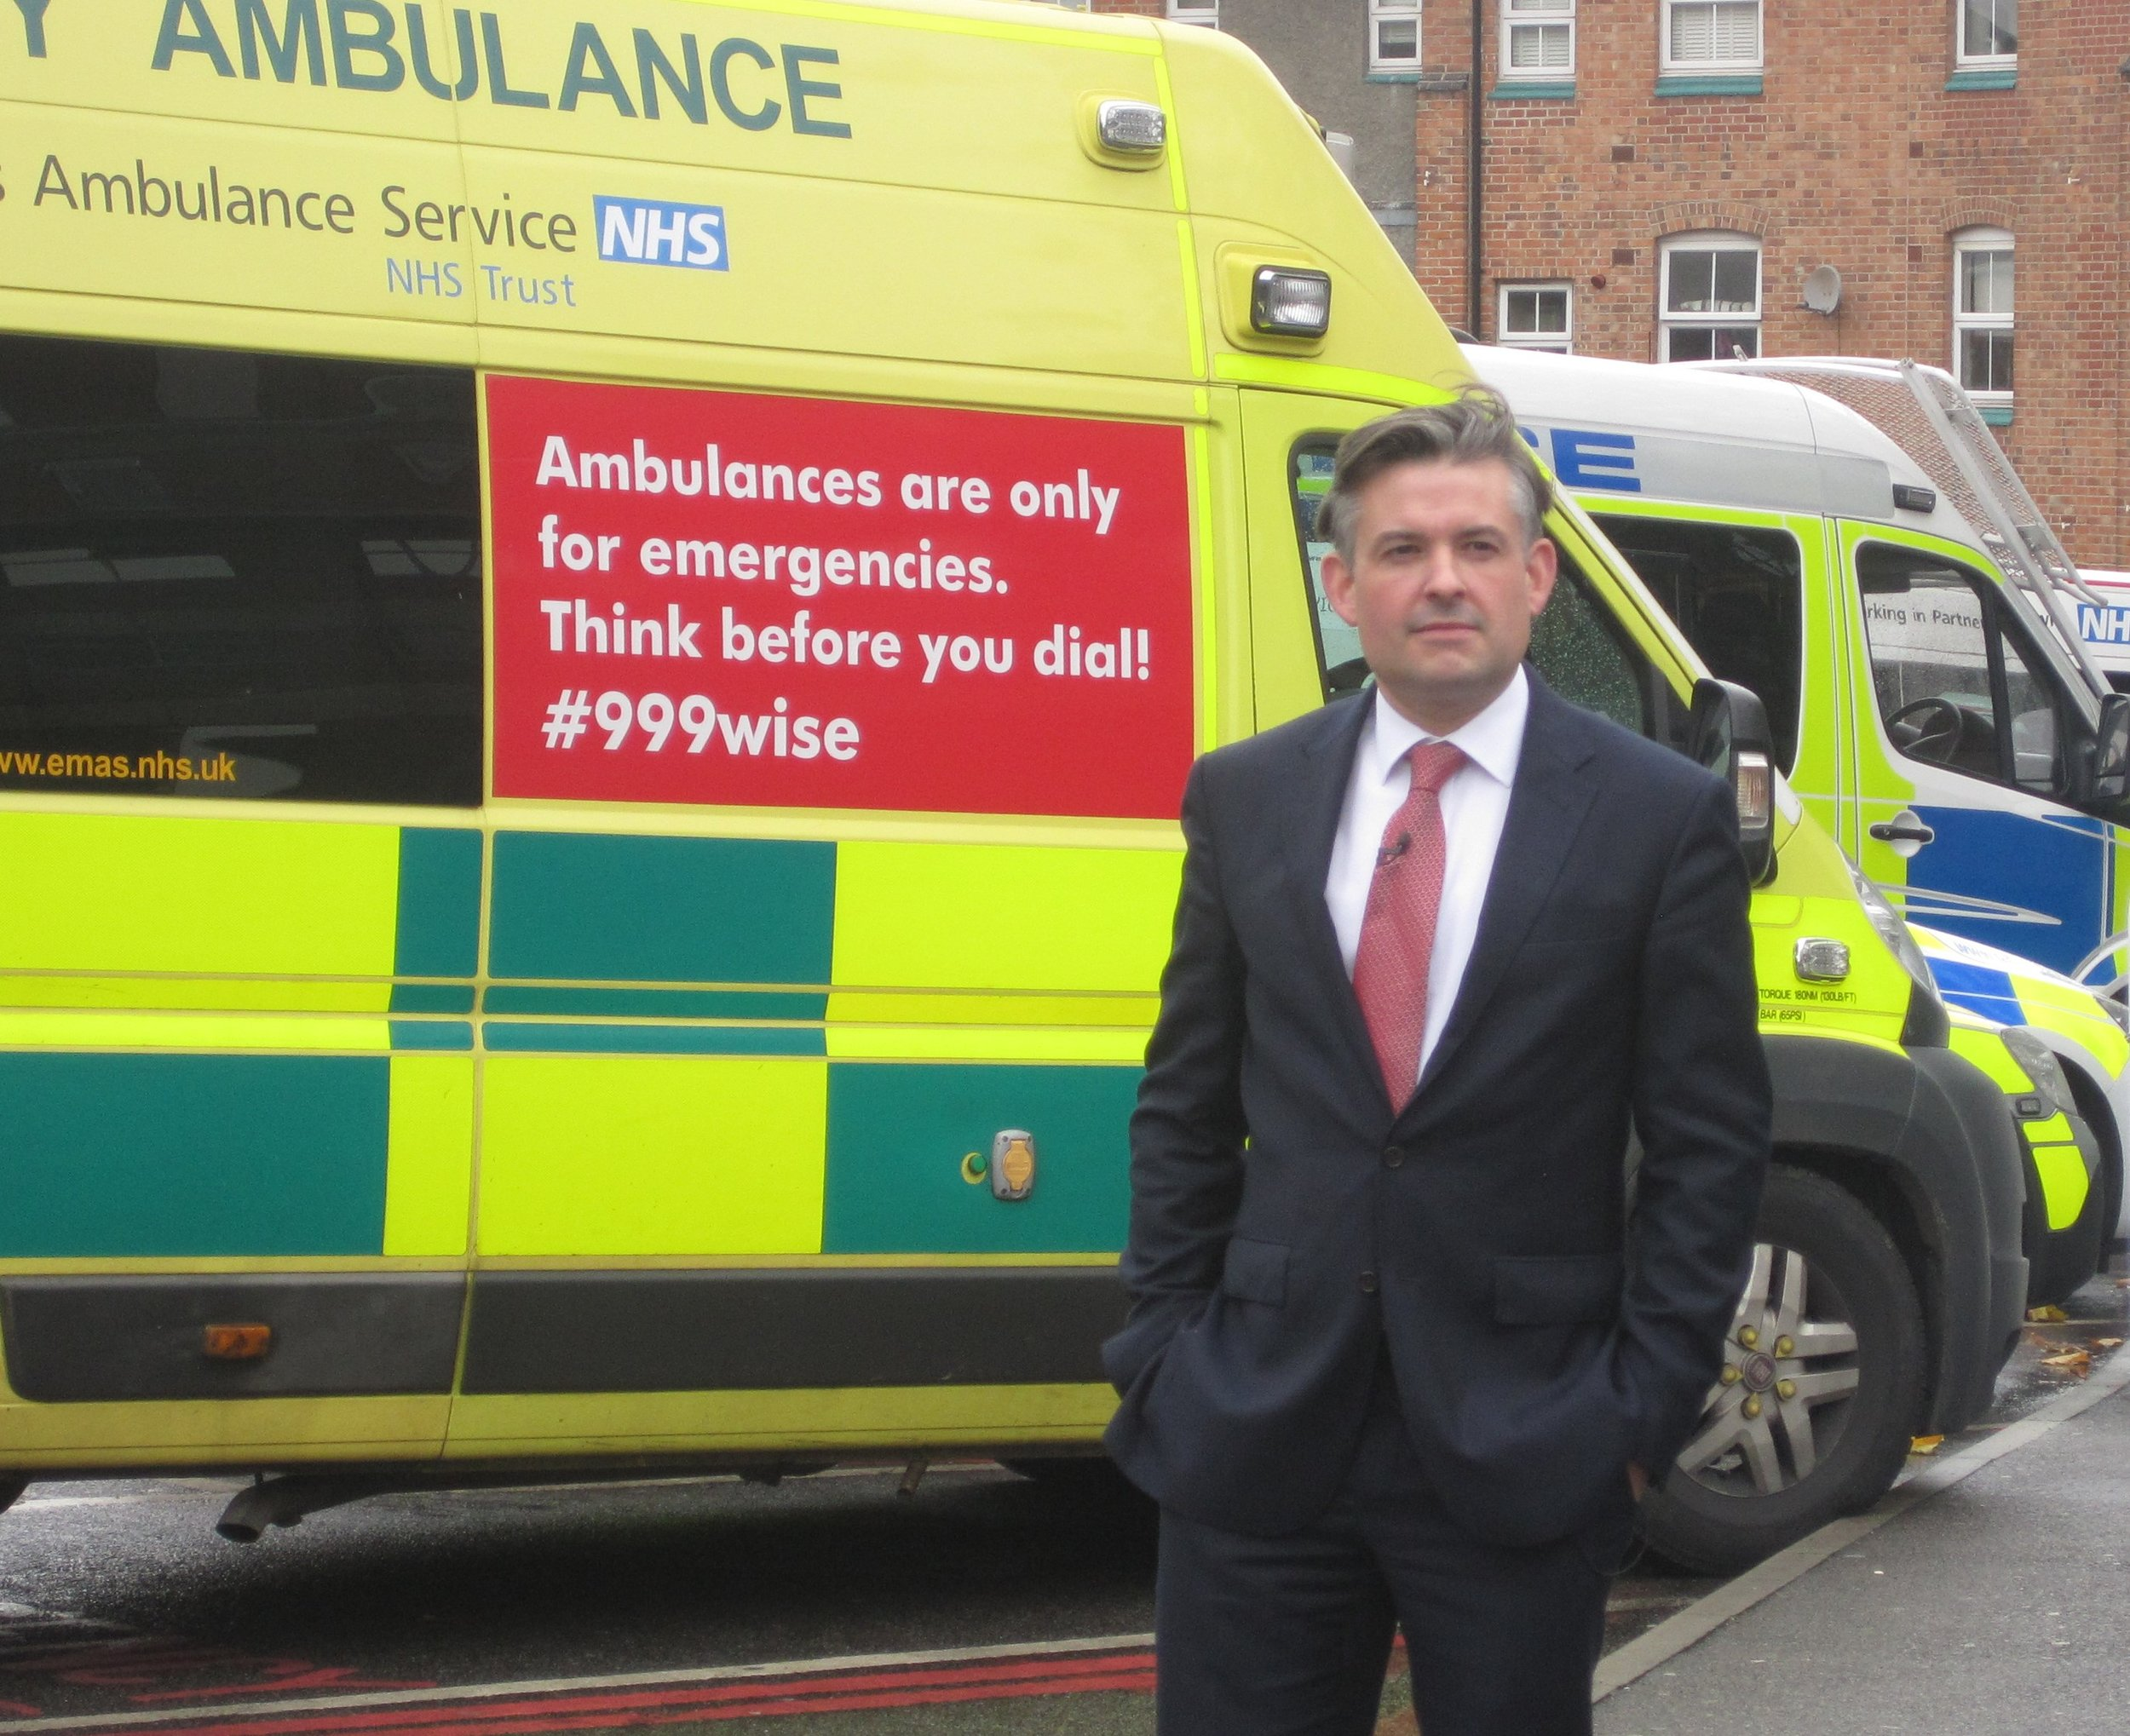 Jon calls on the new Prime Minister to increase NHS funding following a fire at Leicester Royal Infirmary - Tuesday July 30 2019